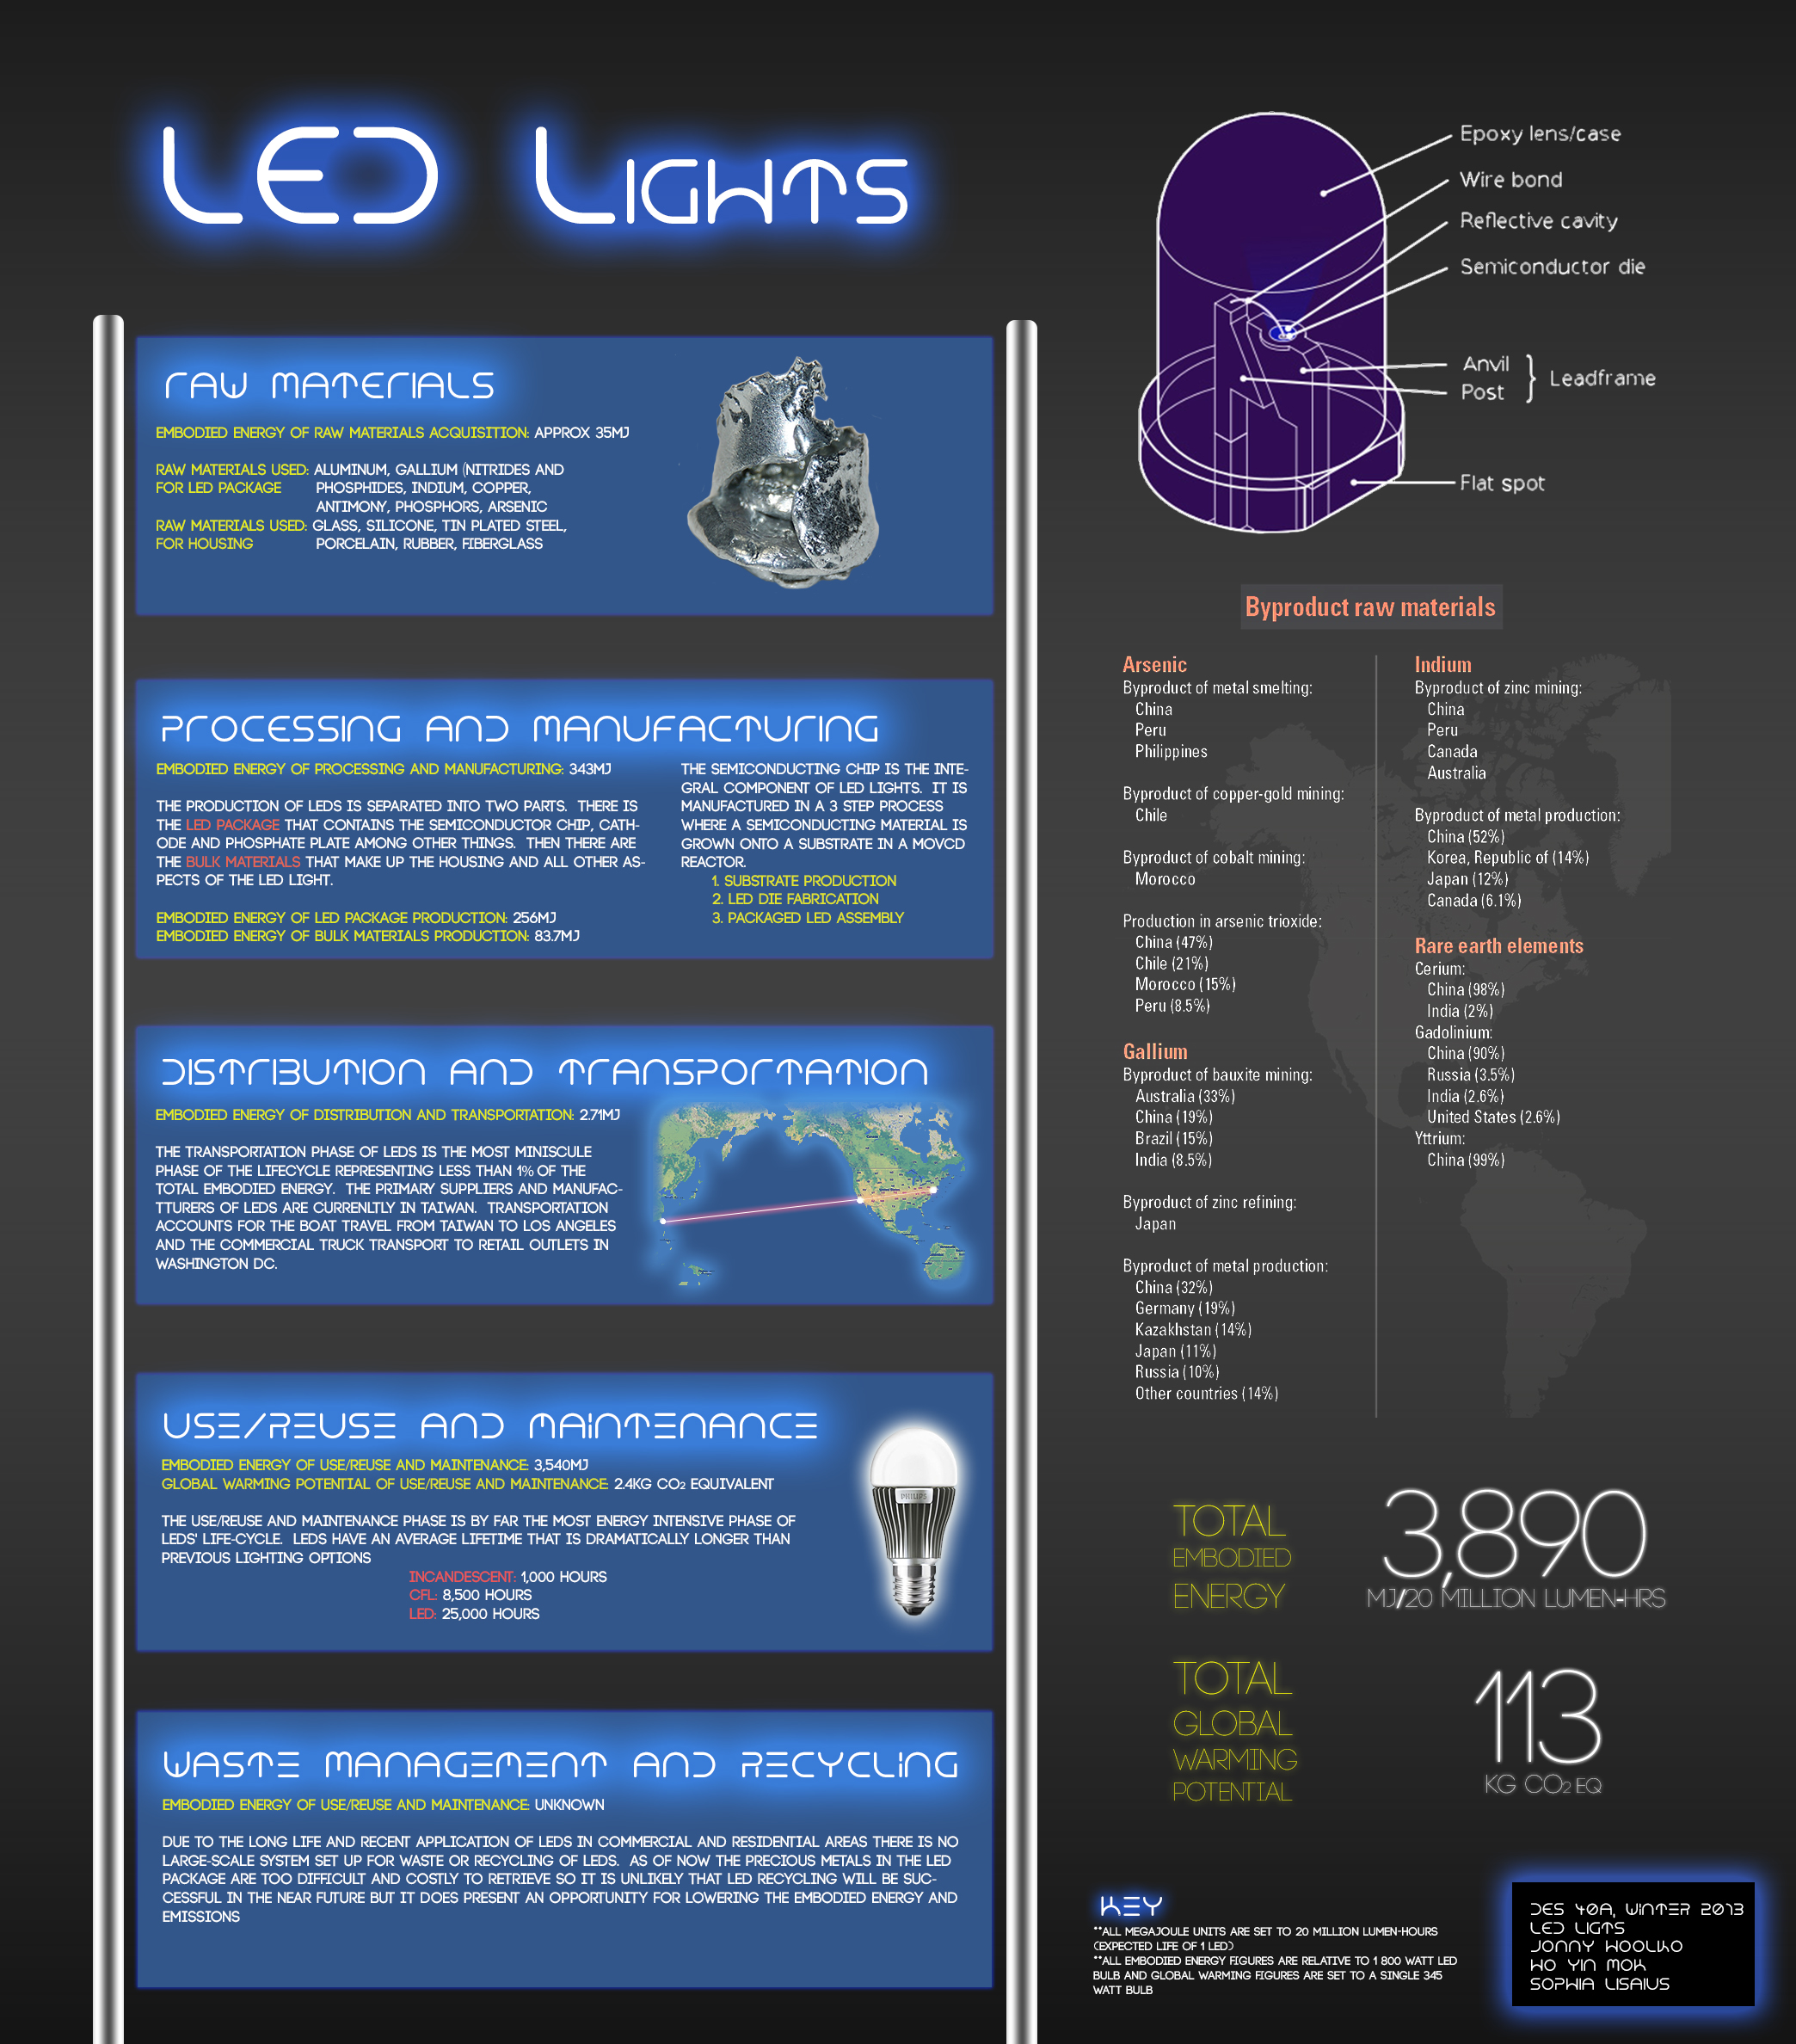 Led Lights Design Life Cycle